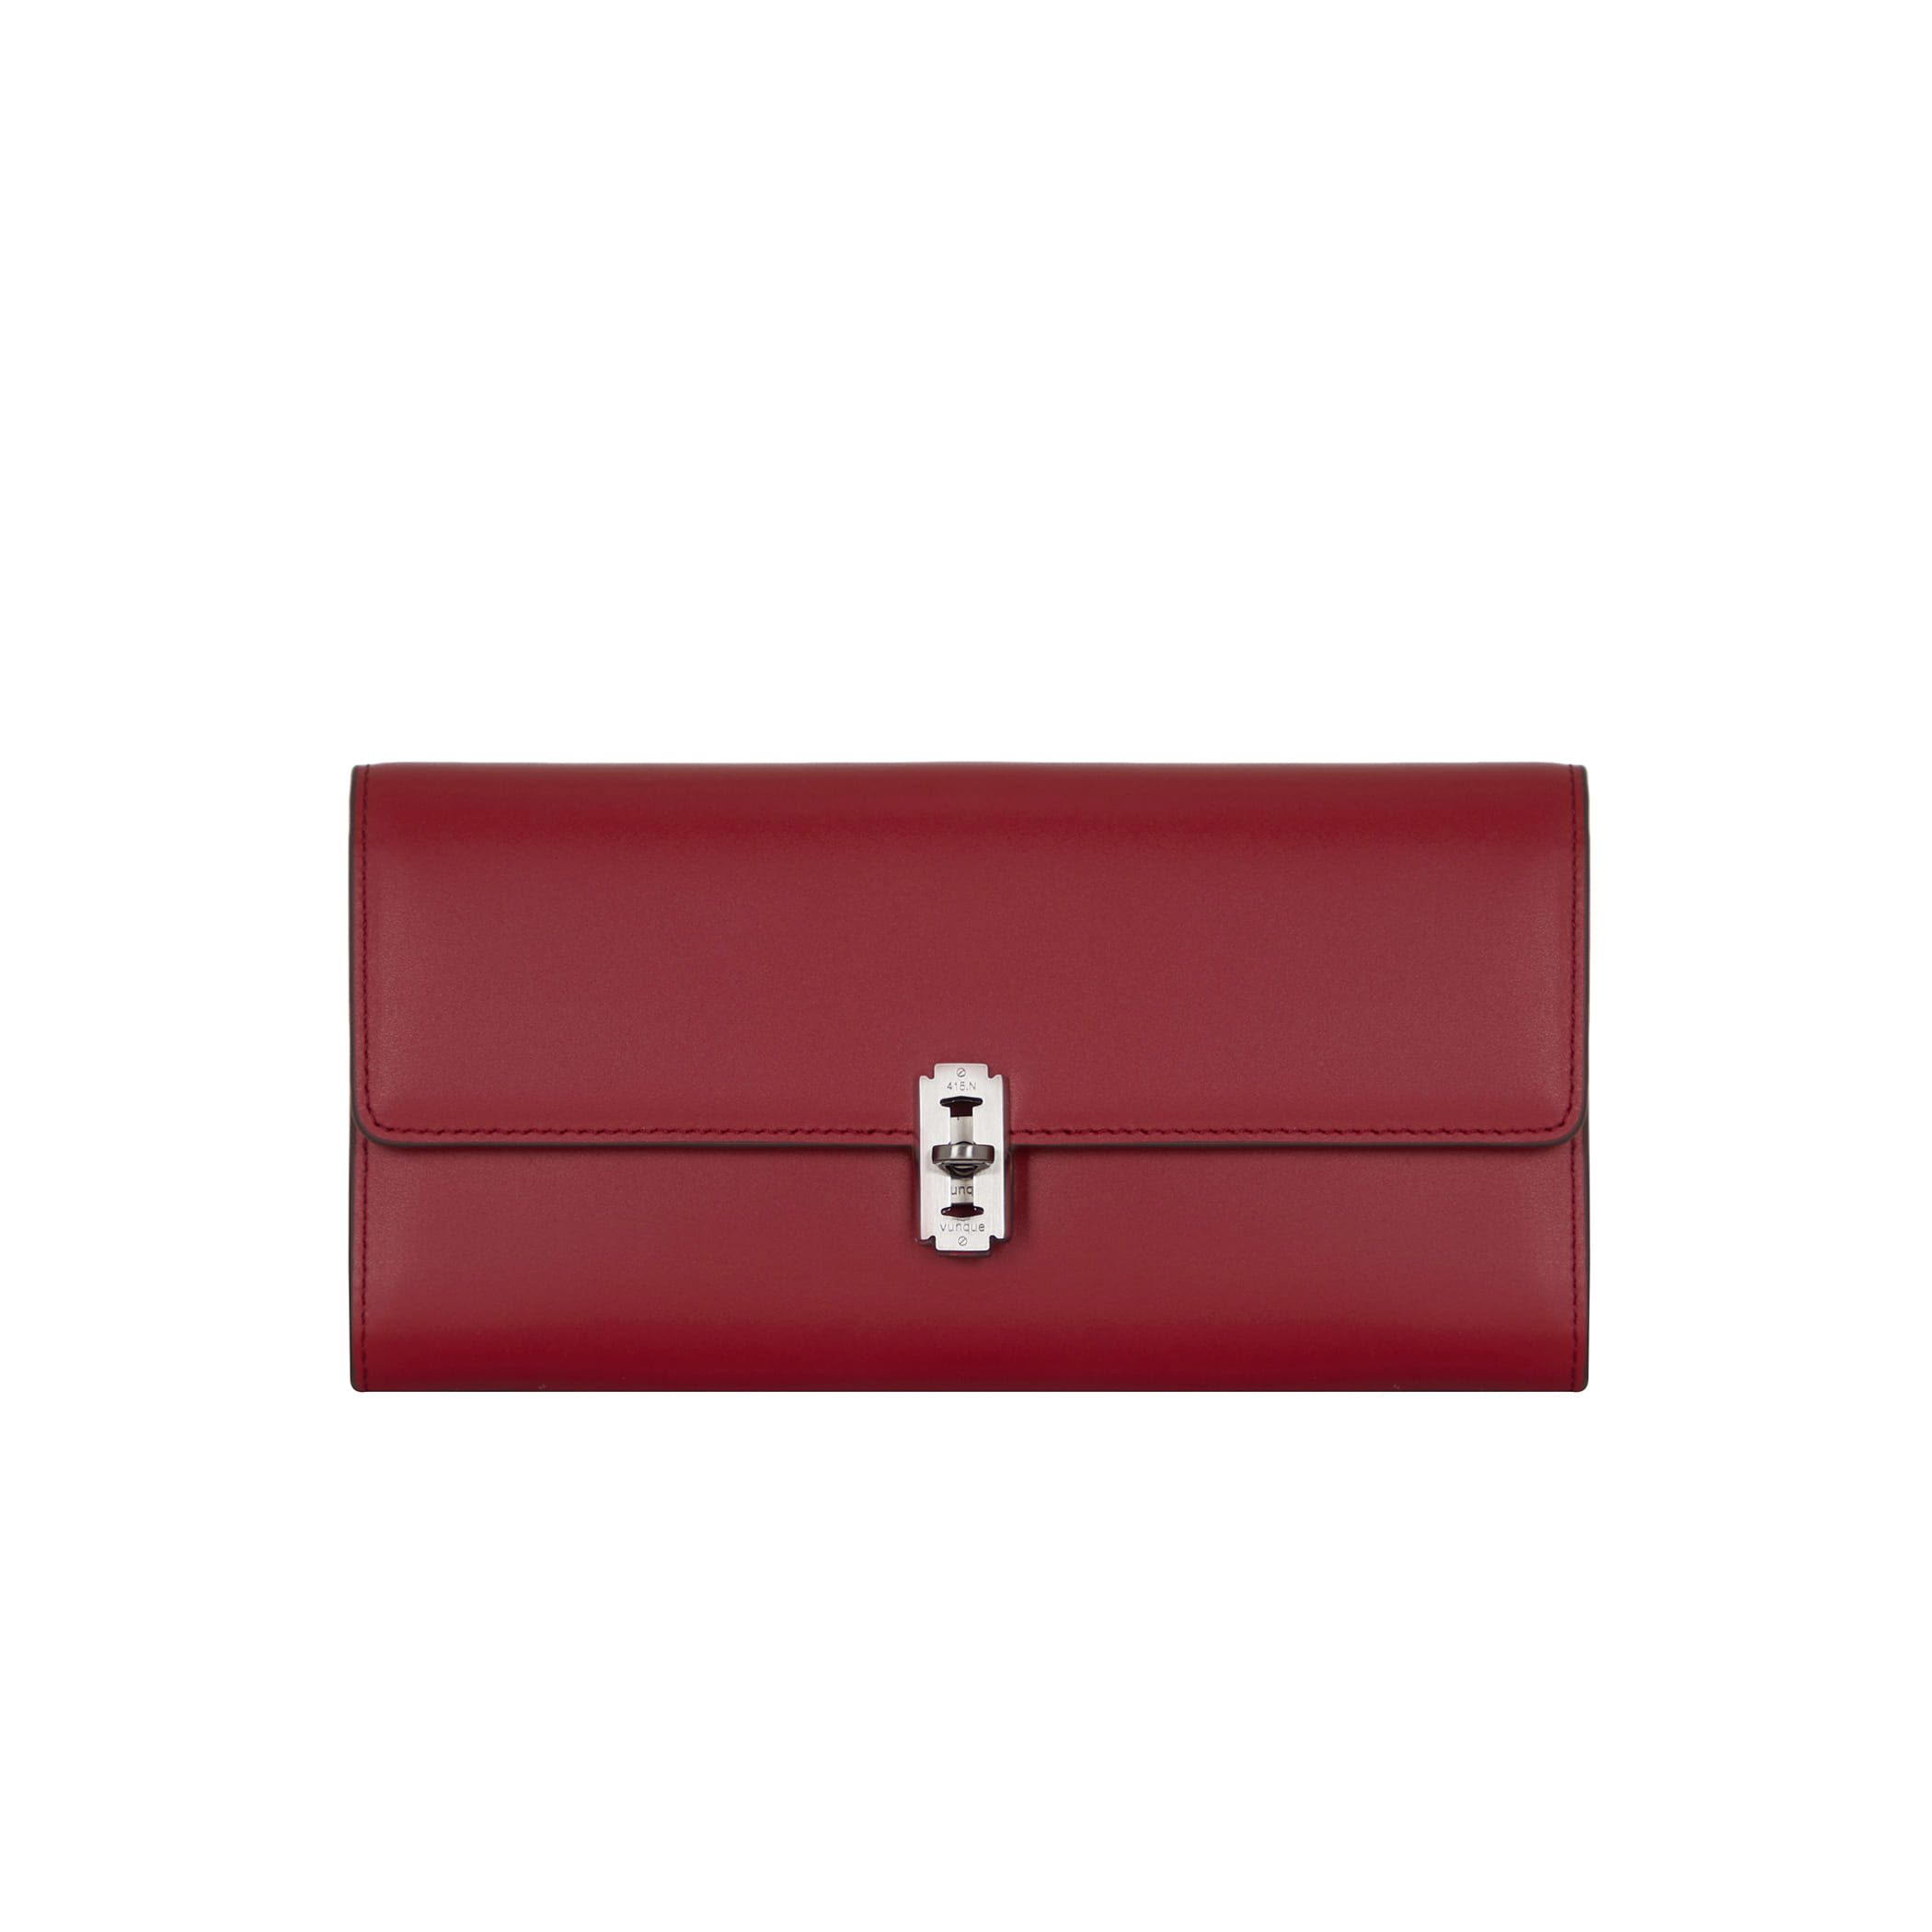 Occam Droit long wallet (오캄 디롯트 장지갑) Deep red